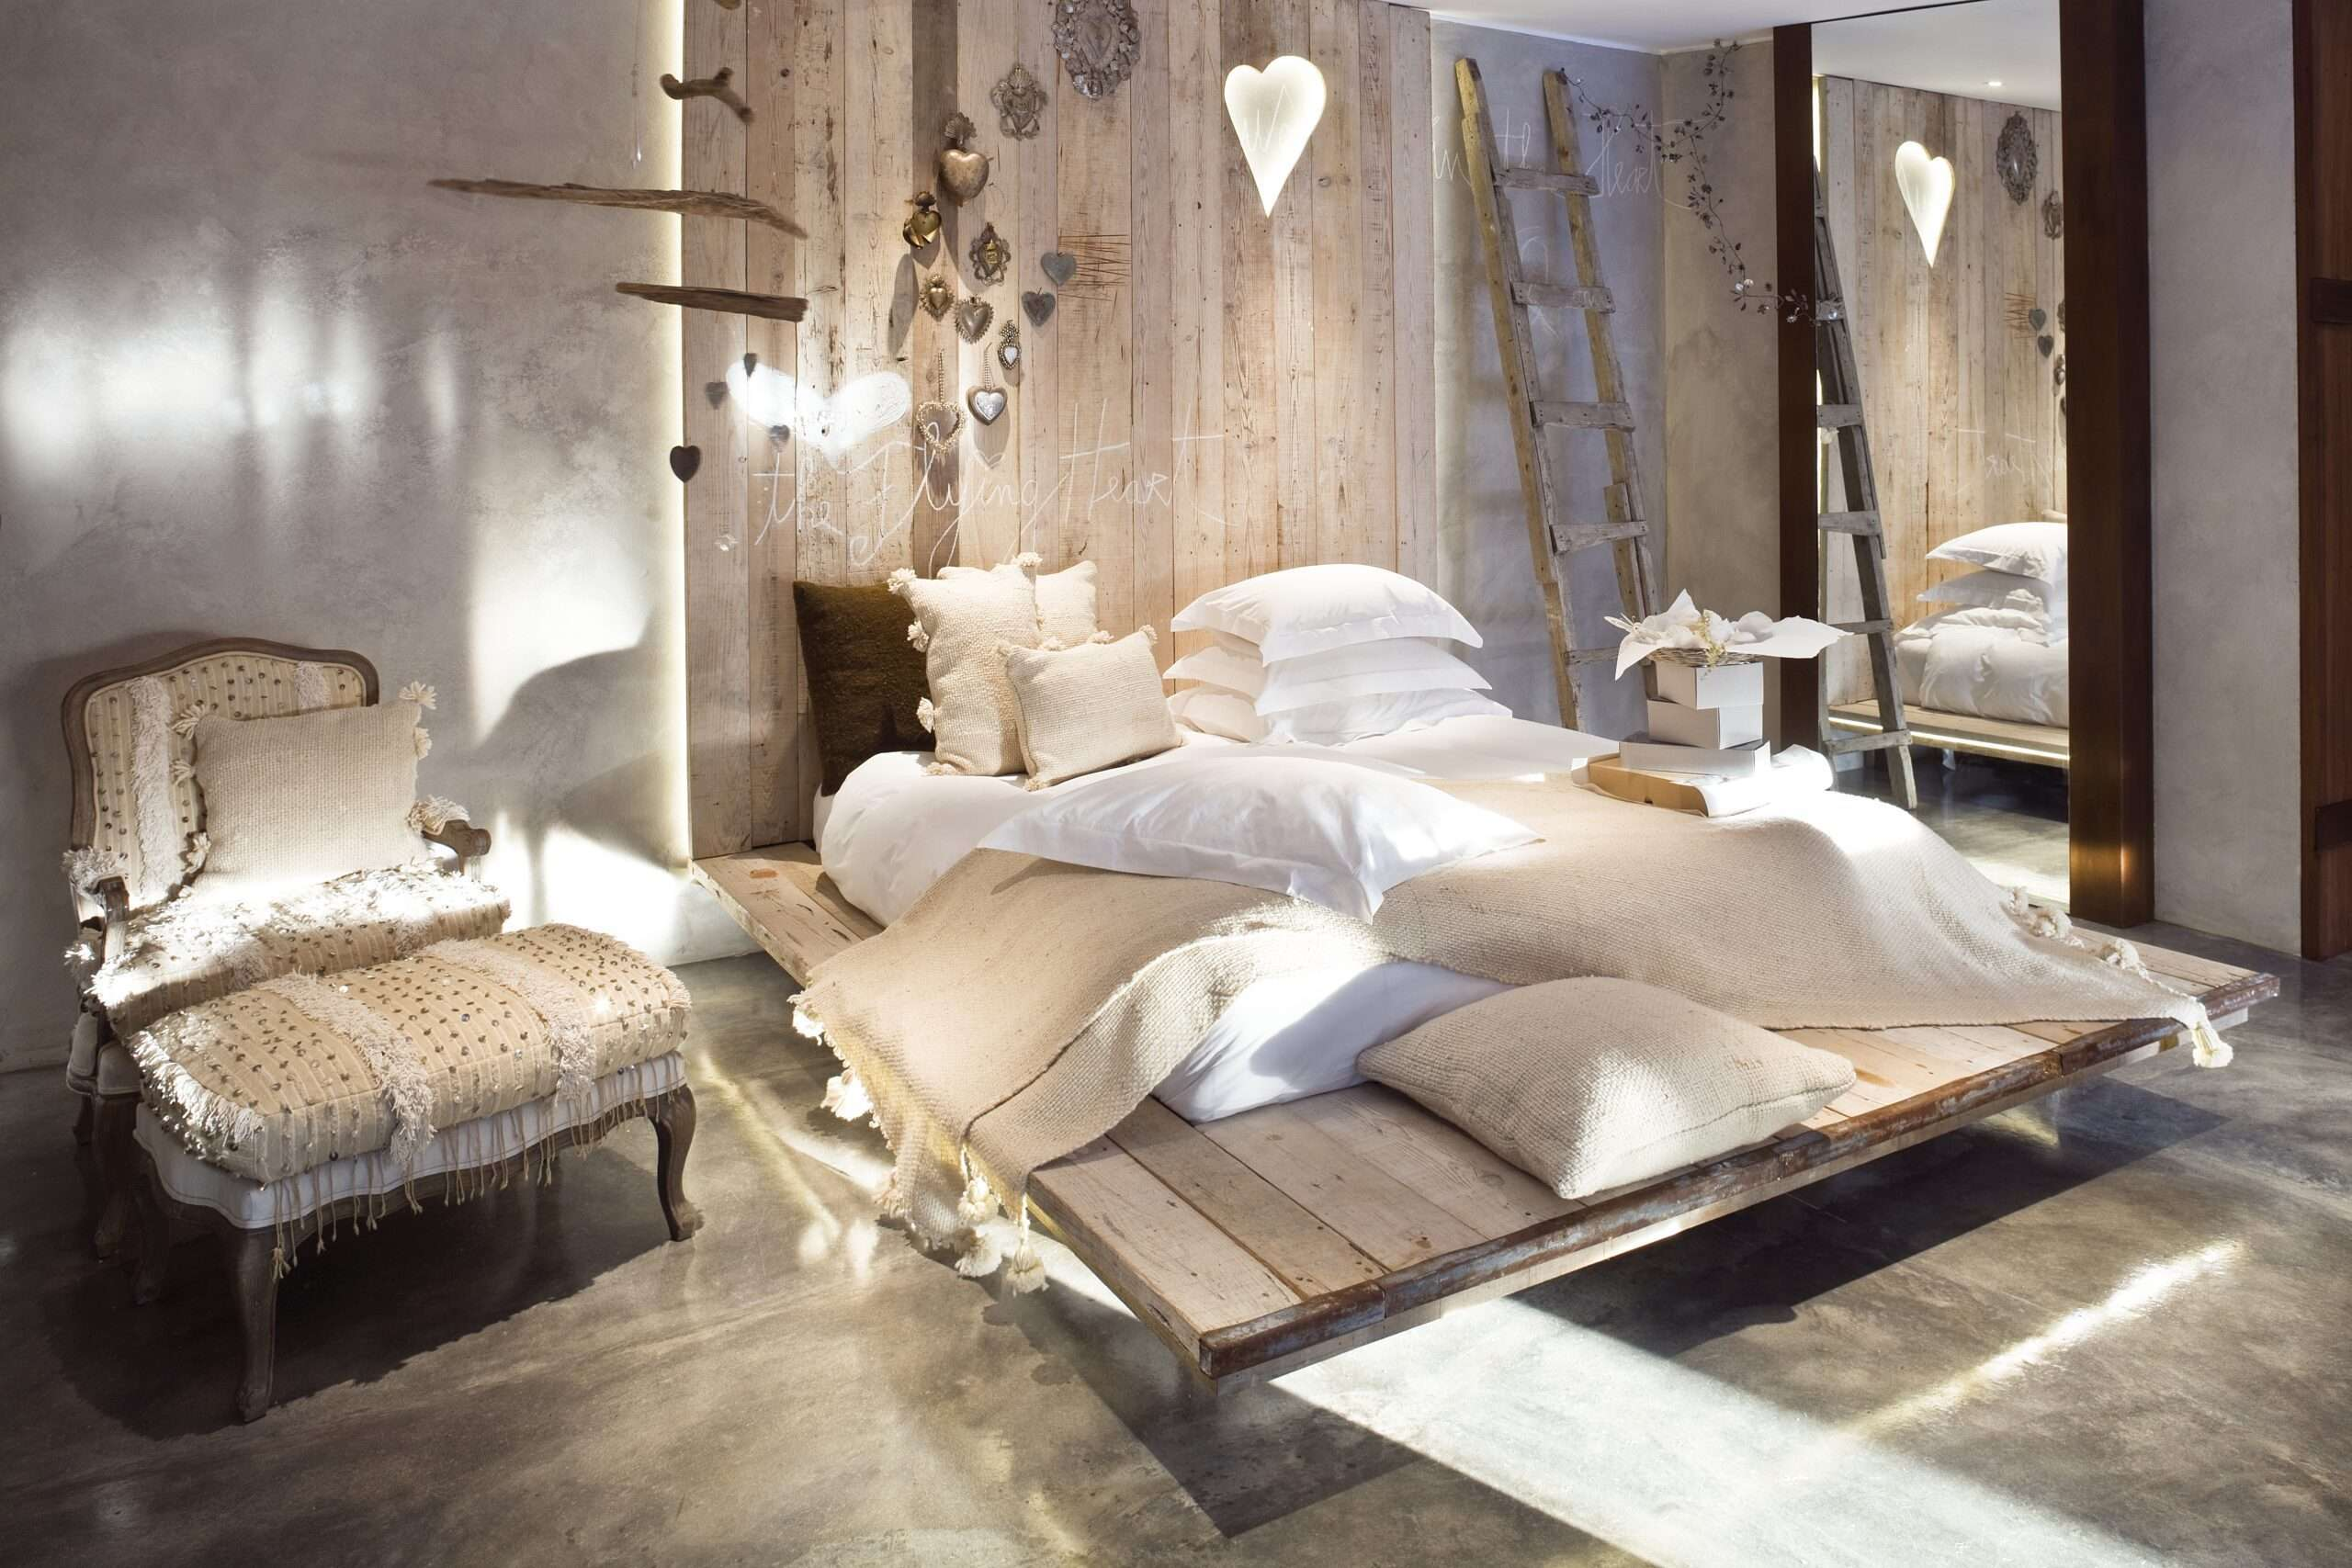 Bedroom decorated with neutral coloured wood and natural materials at Areias do Seixo Luxury Eco Retreat